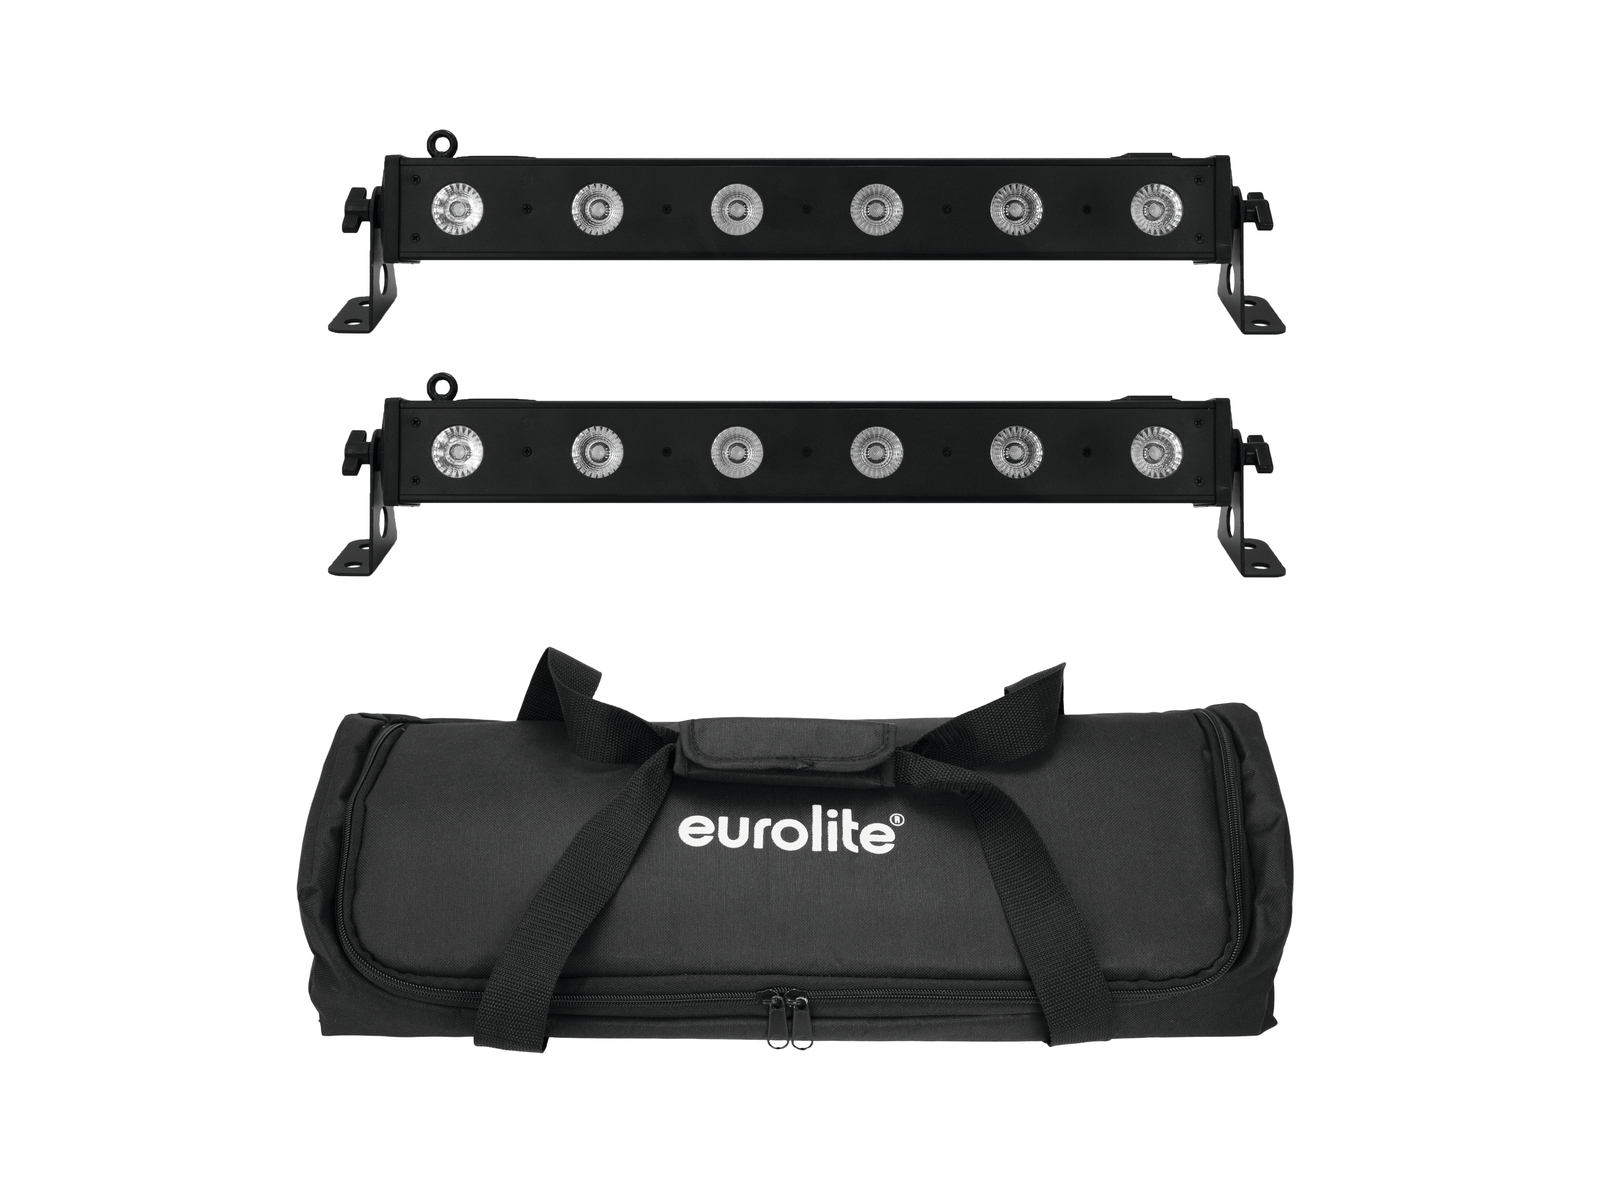 EUROLITE Set 2x LED BAR-6 QLC RGBW + Borsa Morbida